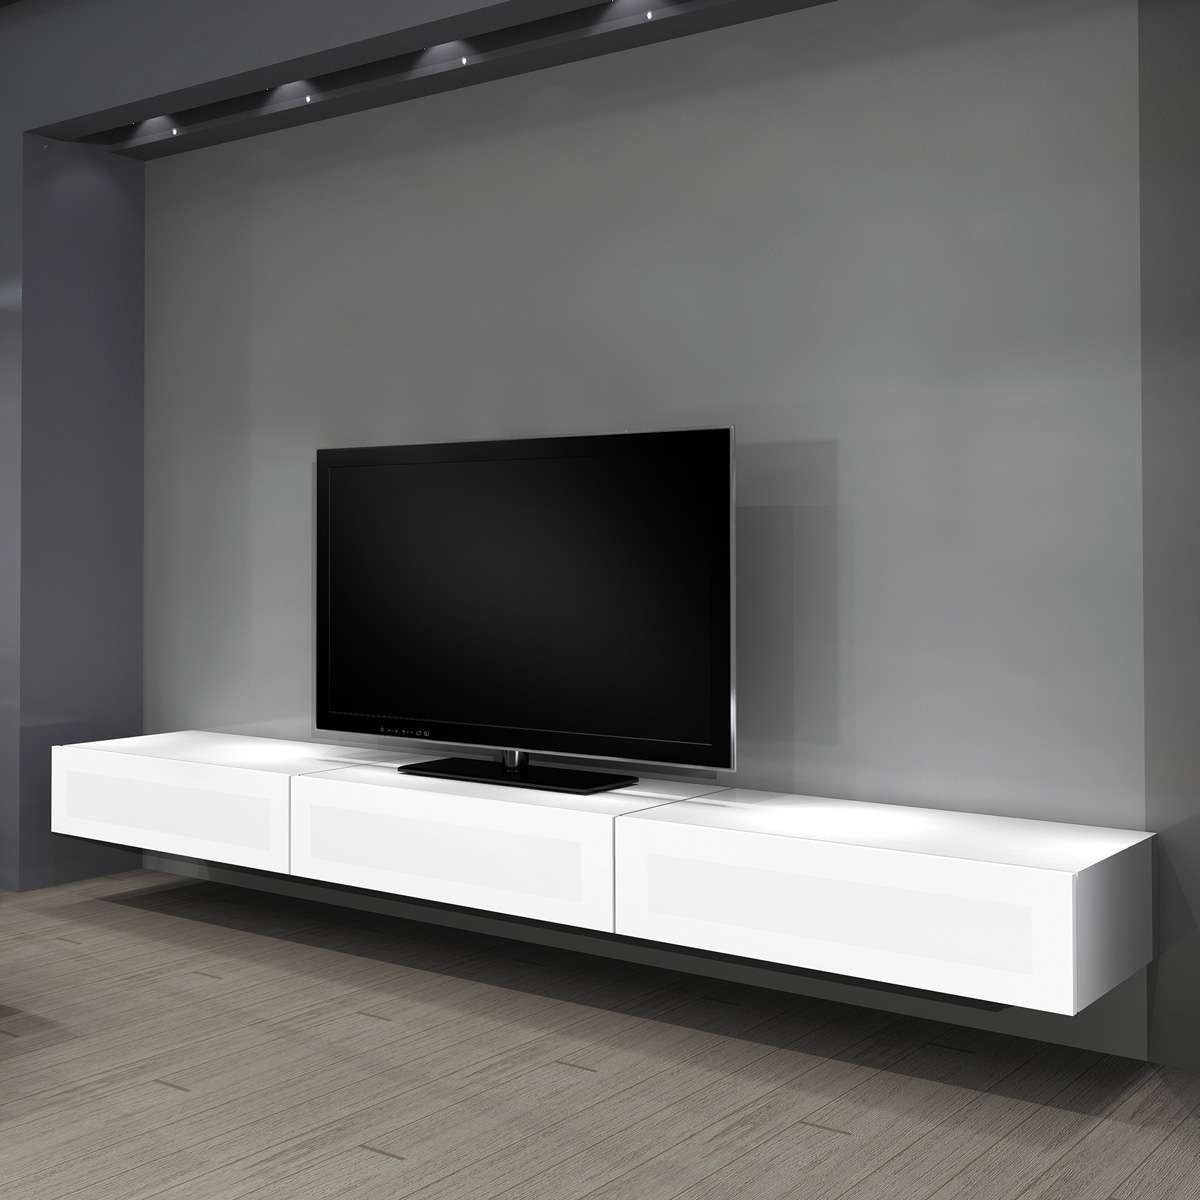 Nice Grey Concrete Wall Of The Ikea Tv Cabinet Wall Mount That Can Inside Modern Tv Stands With Mount (Gallery 7 of 15)